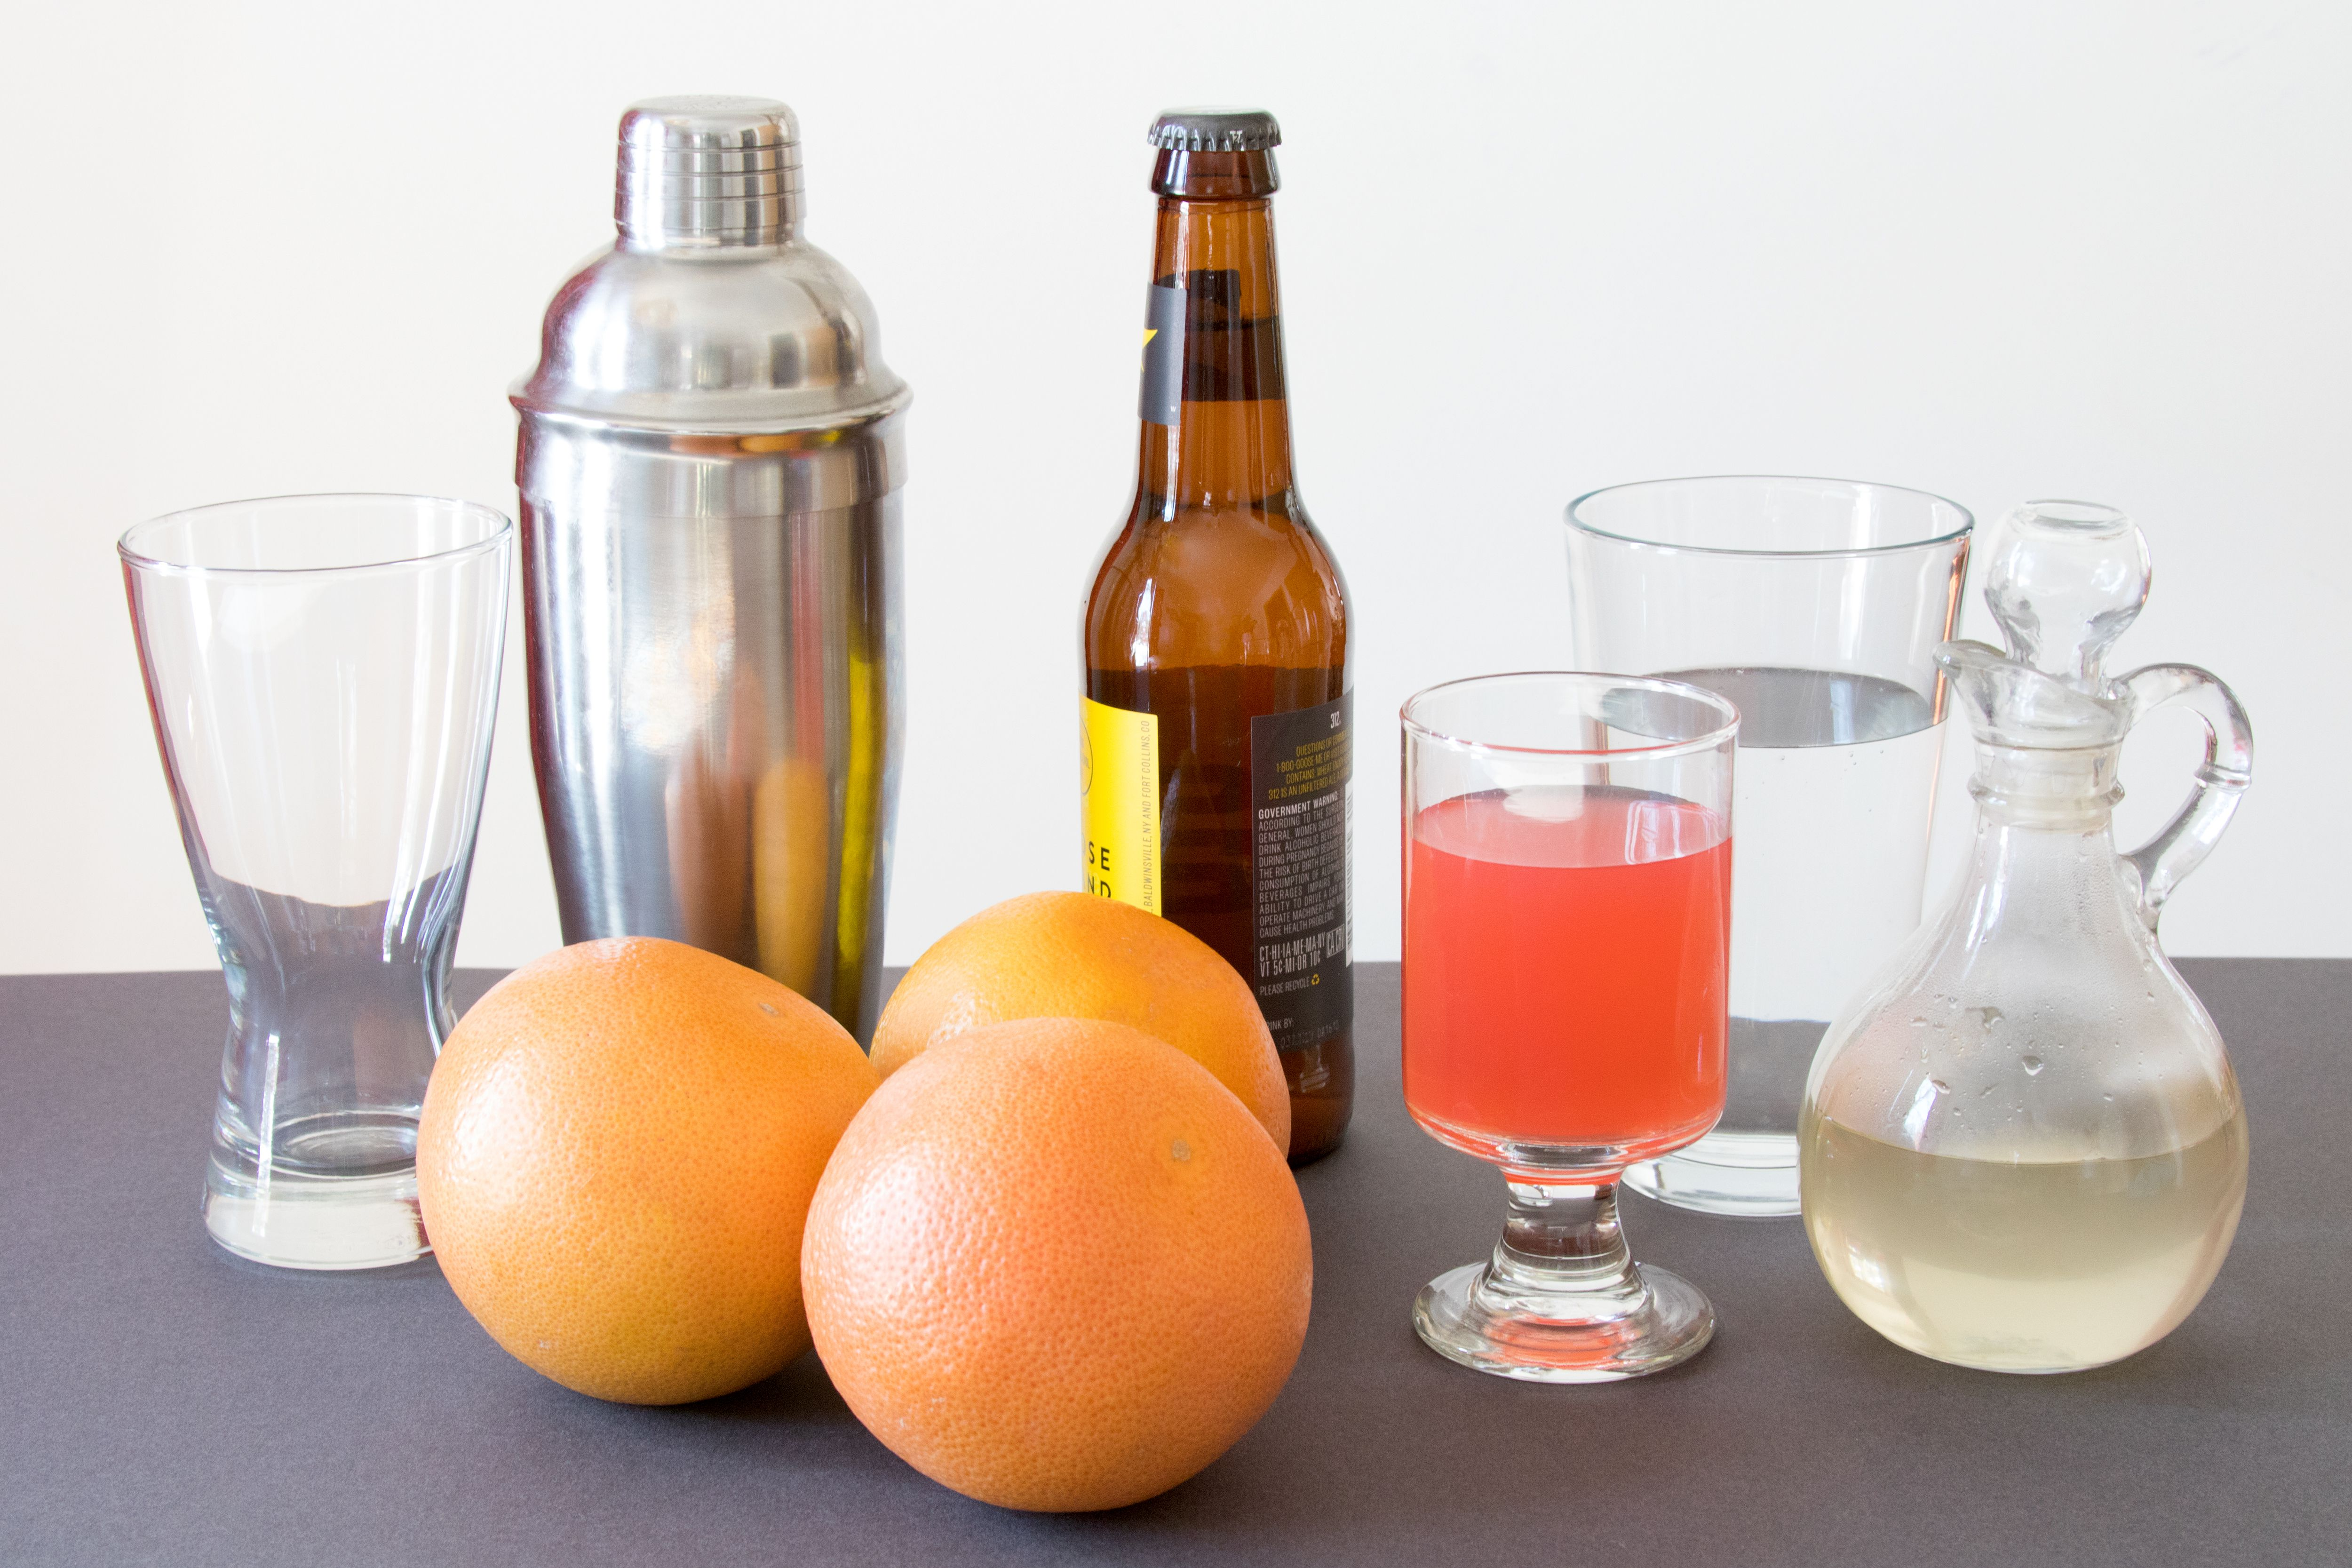 Ingredients for a Grapefruit Shandy